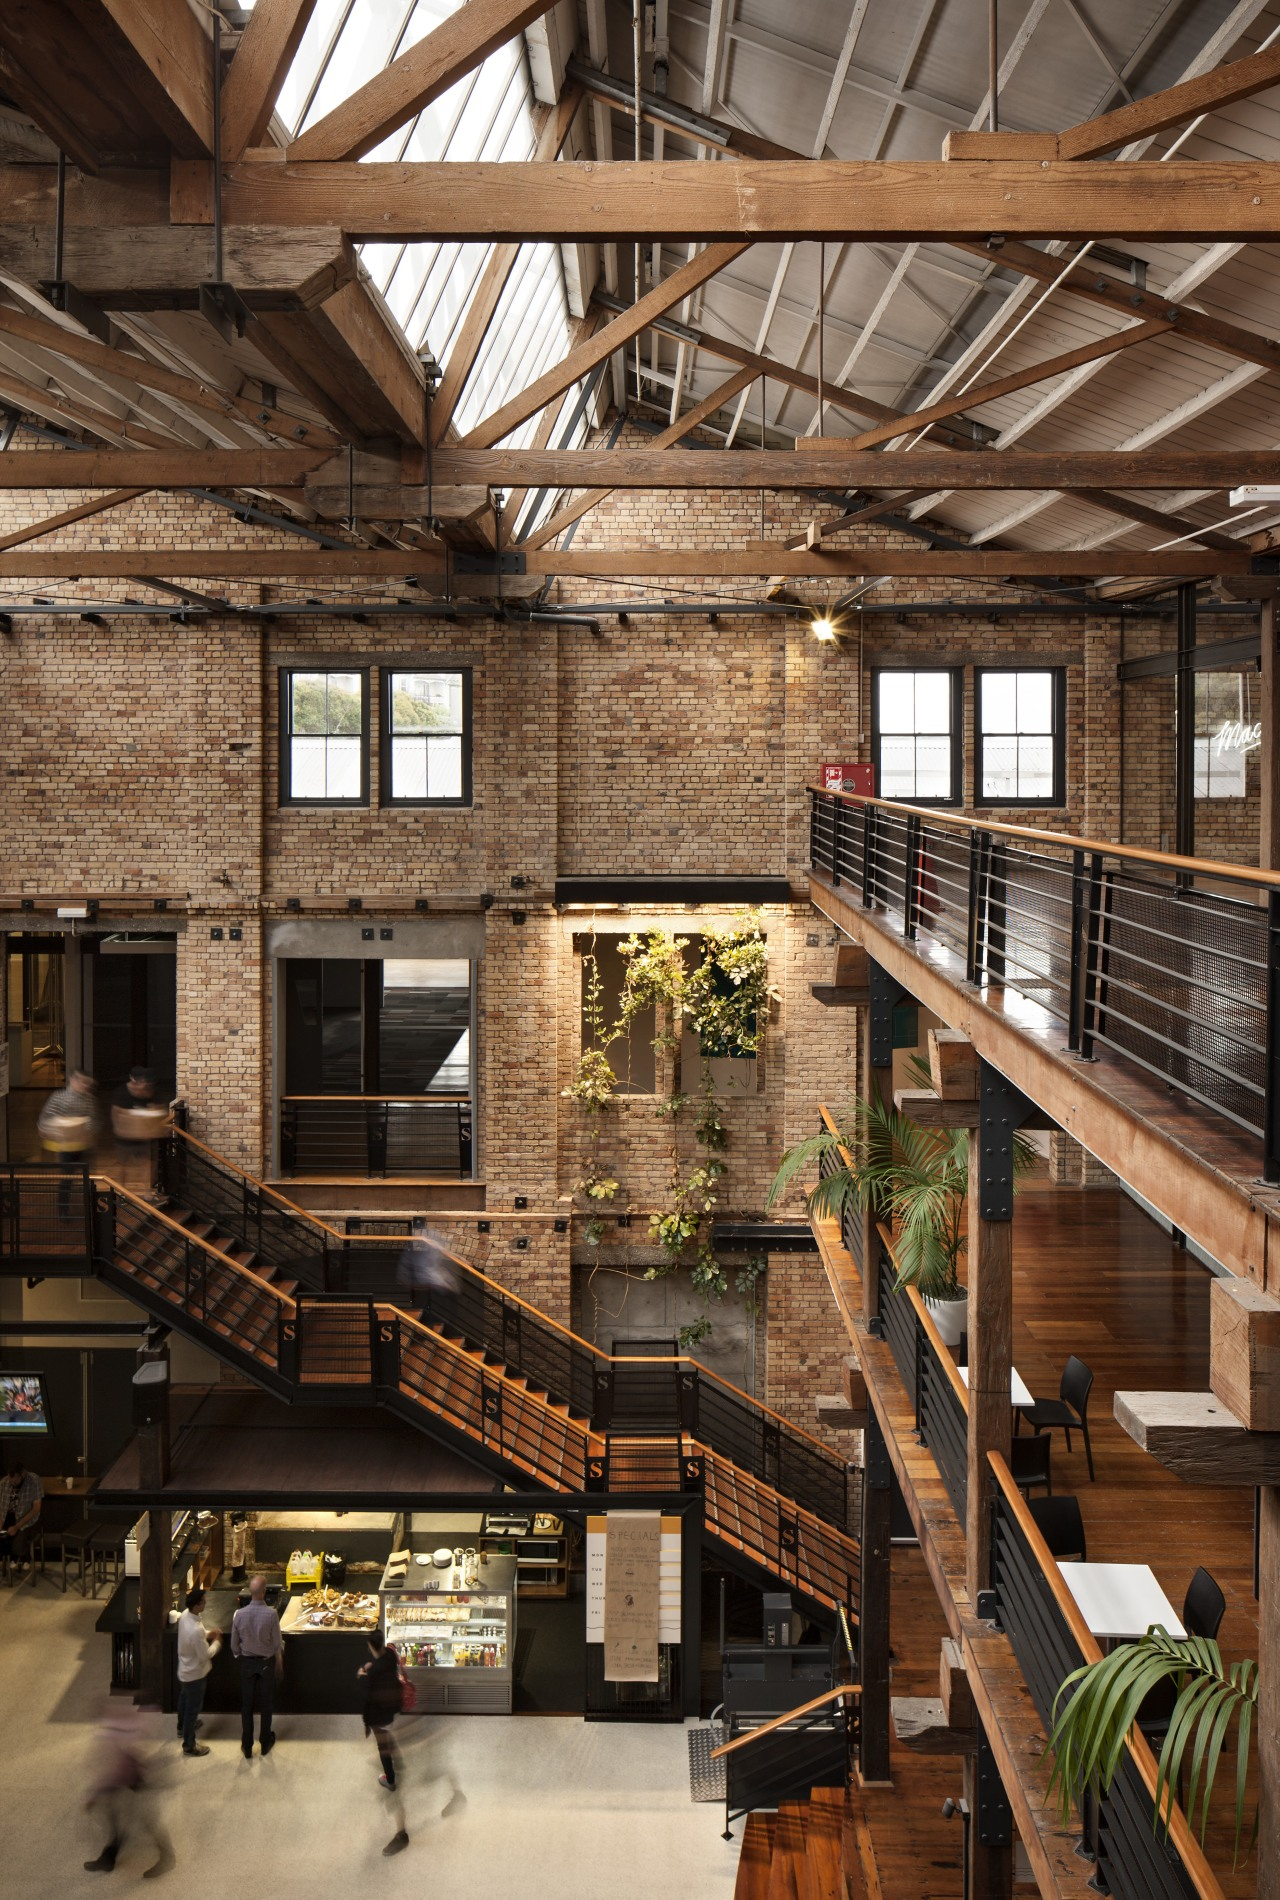 Haydn & Rollett Construction was the main contractor architecture, beam, daylighting, interior design, lobby, wood, brown